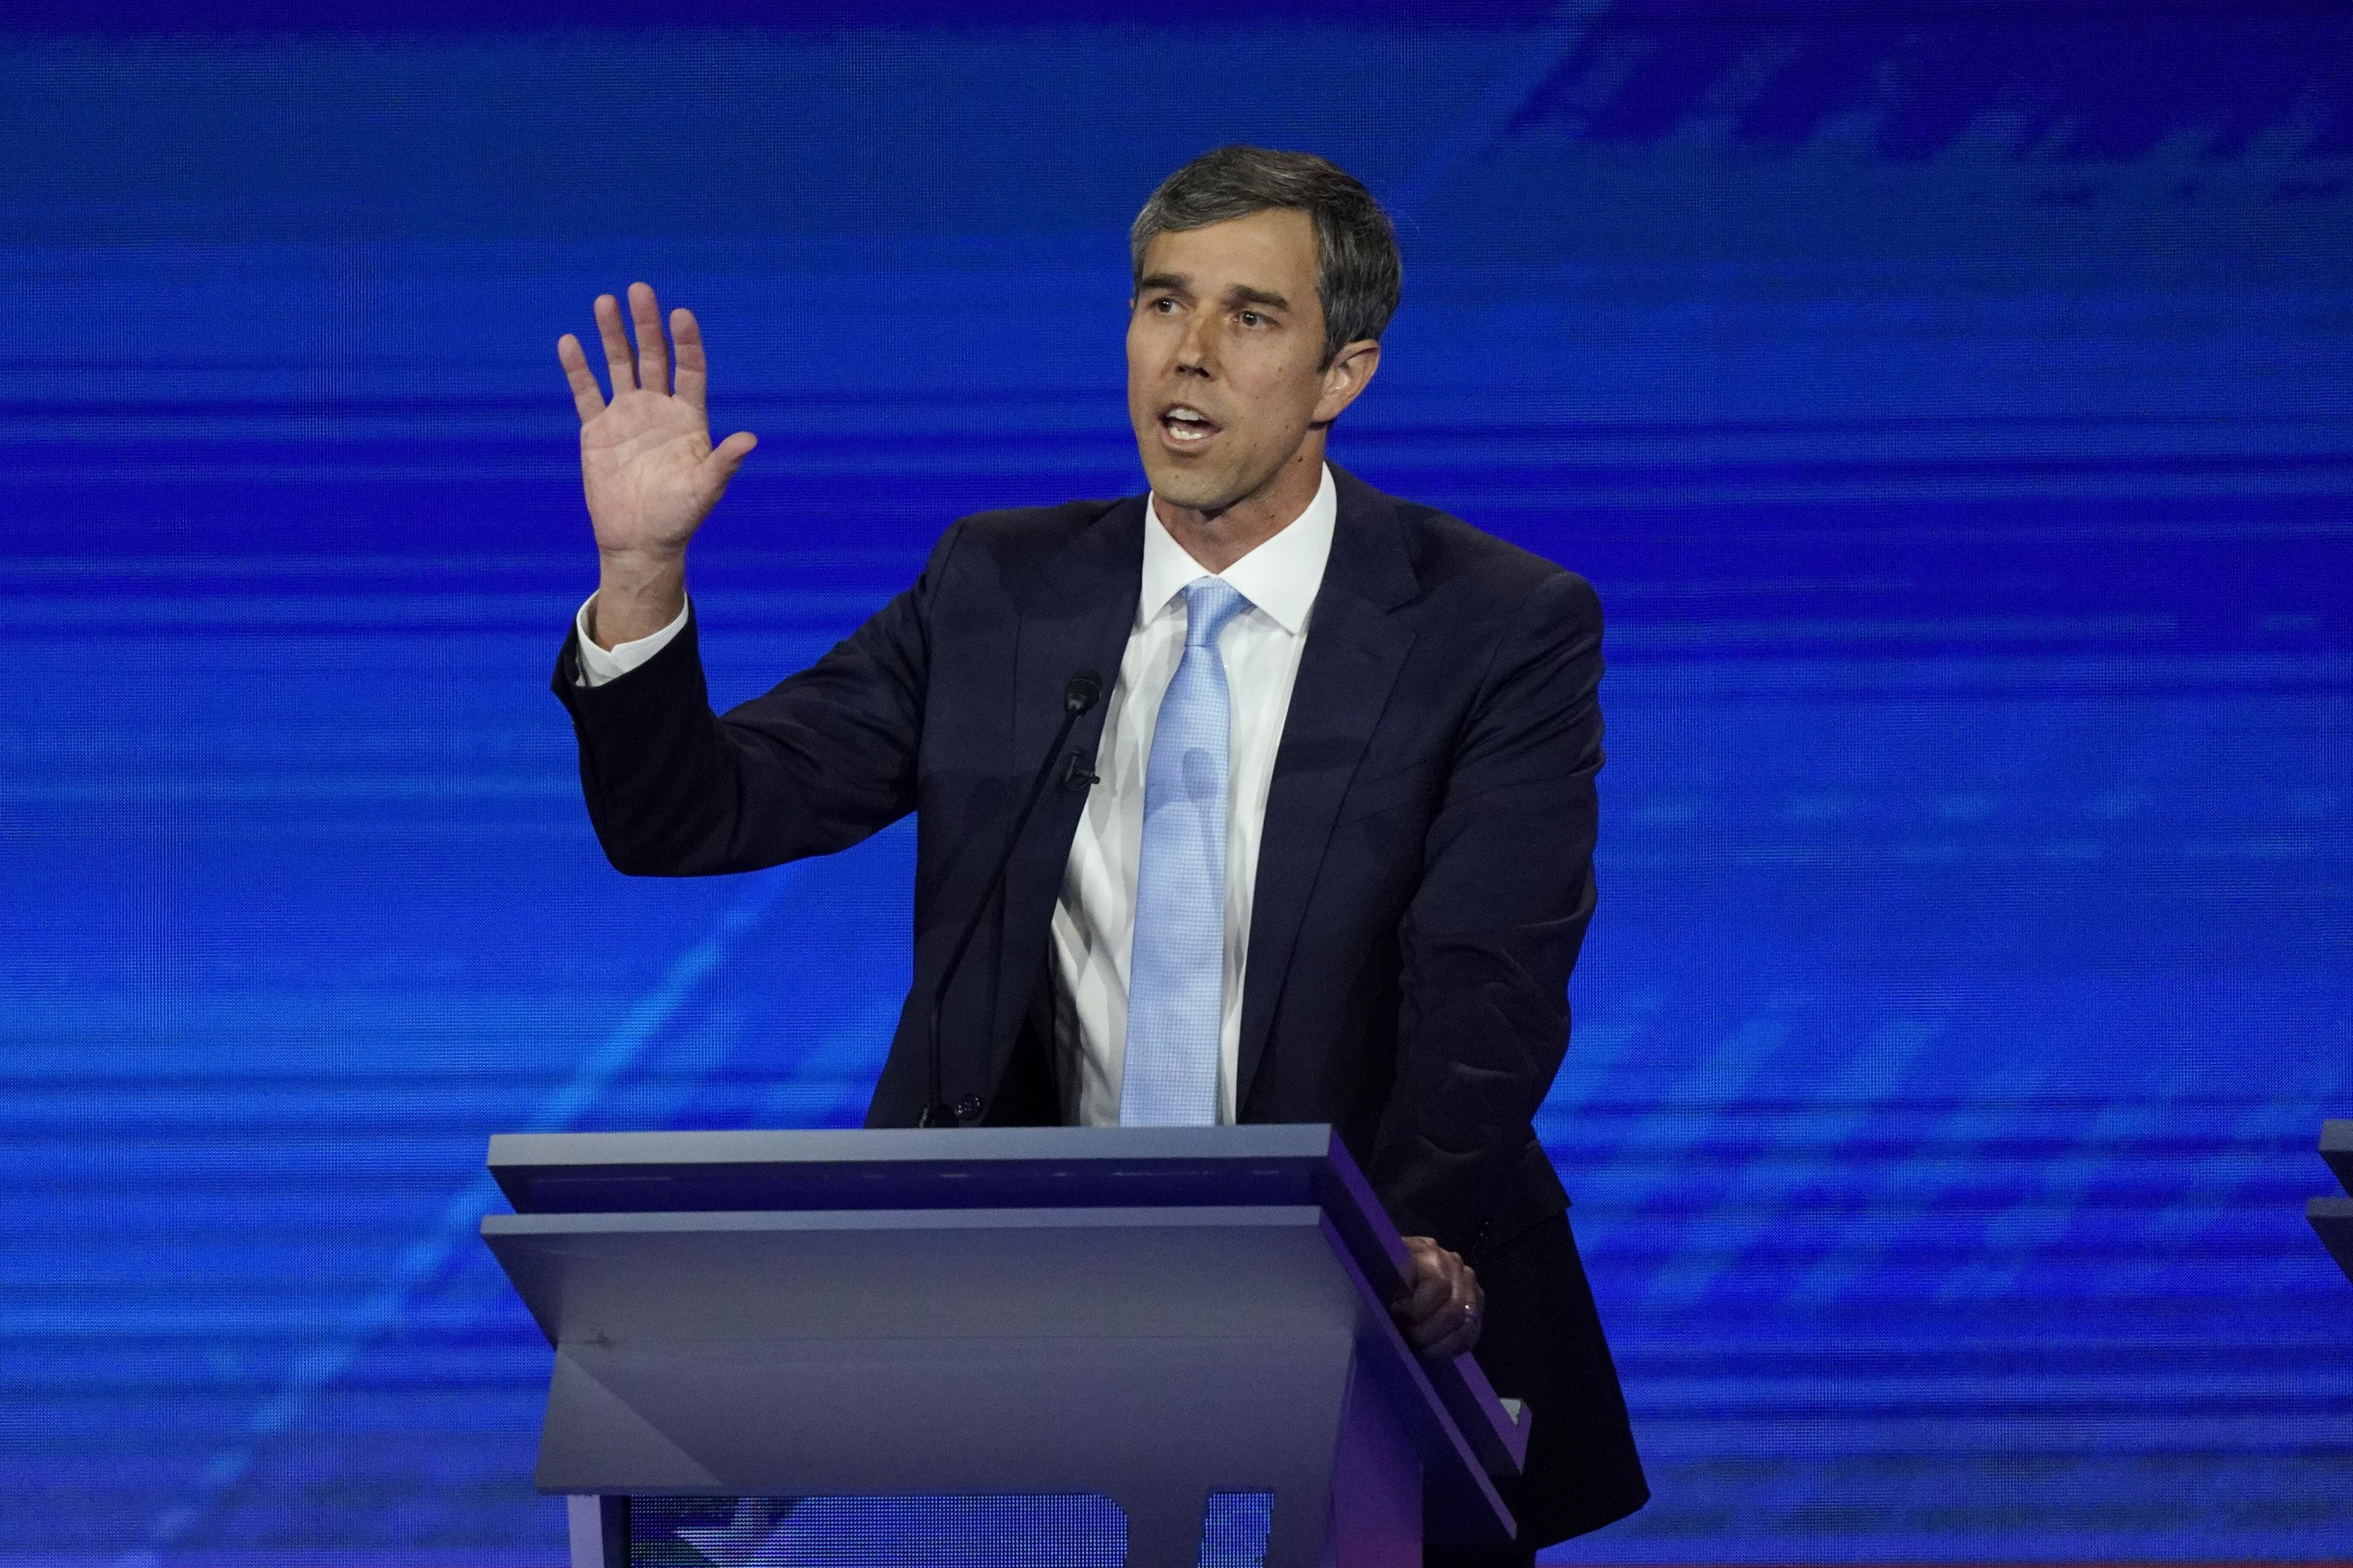 Beto O'Rourke: 'Ask Chuck Schumer' what he's done on guns